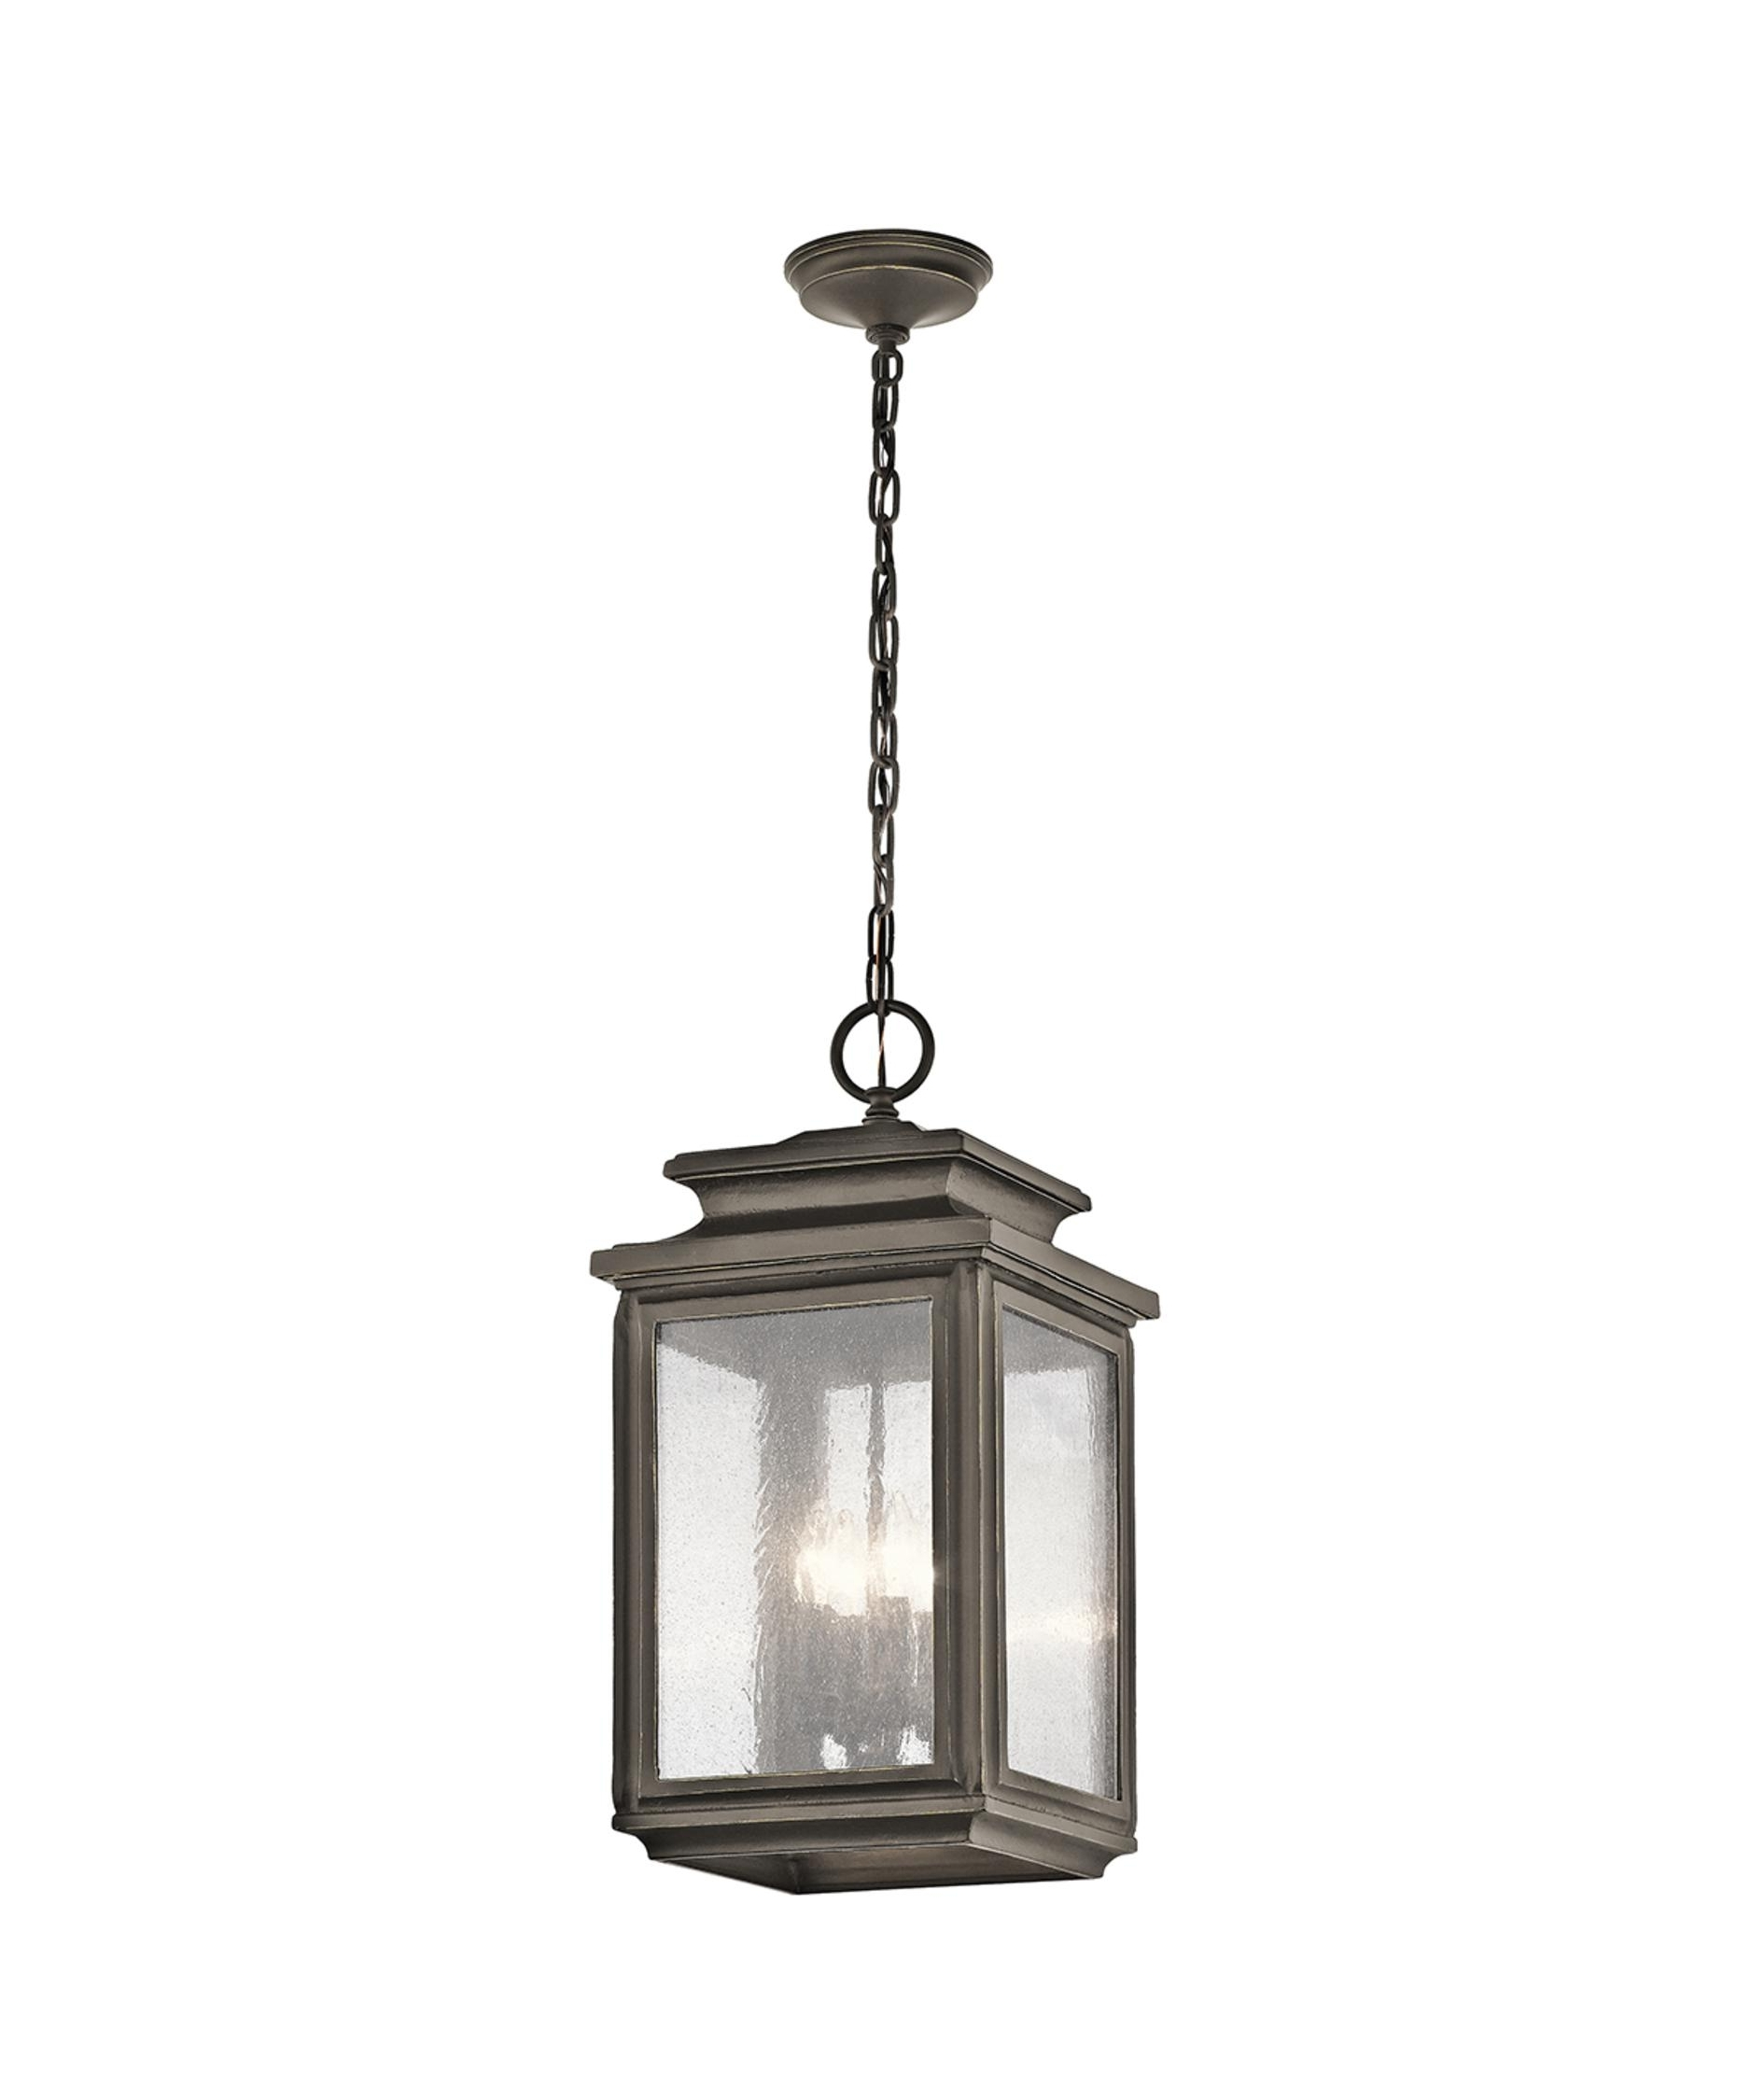 Kichler 49505 Wiscombe Park 11 Inch Wide 4 Light Outdoor Hanging Intended For Well Liked Italian Outdoor Lanterns (View 10 of 20)